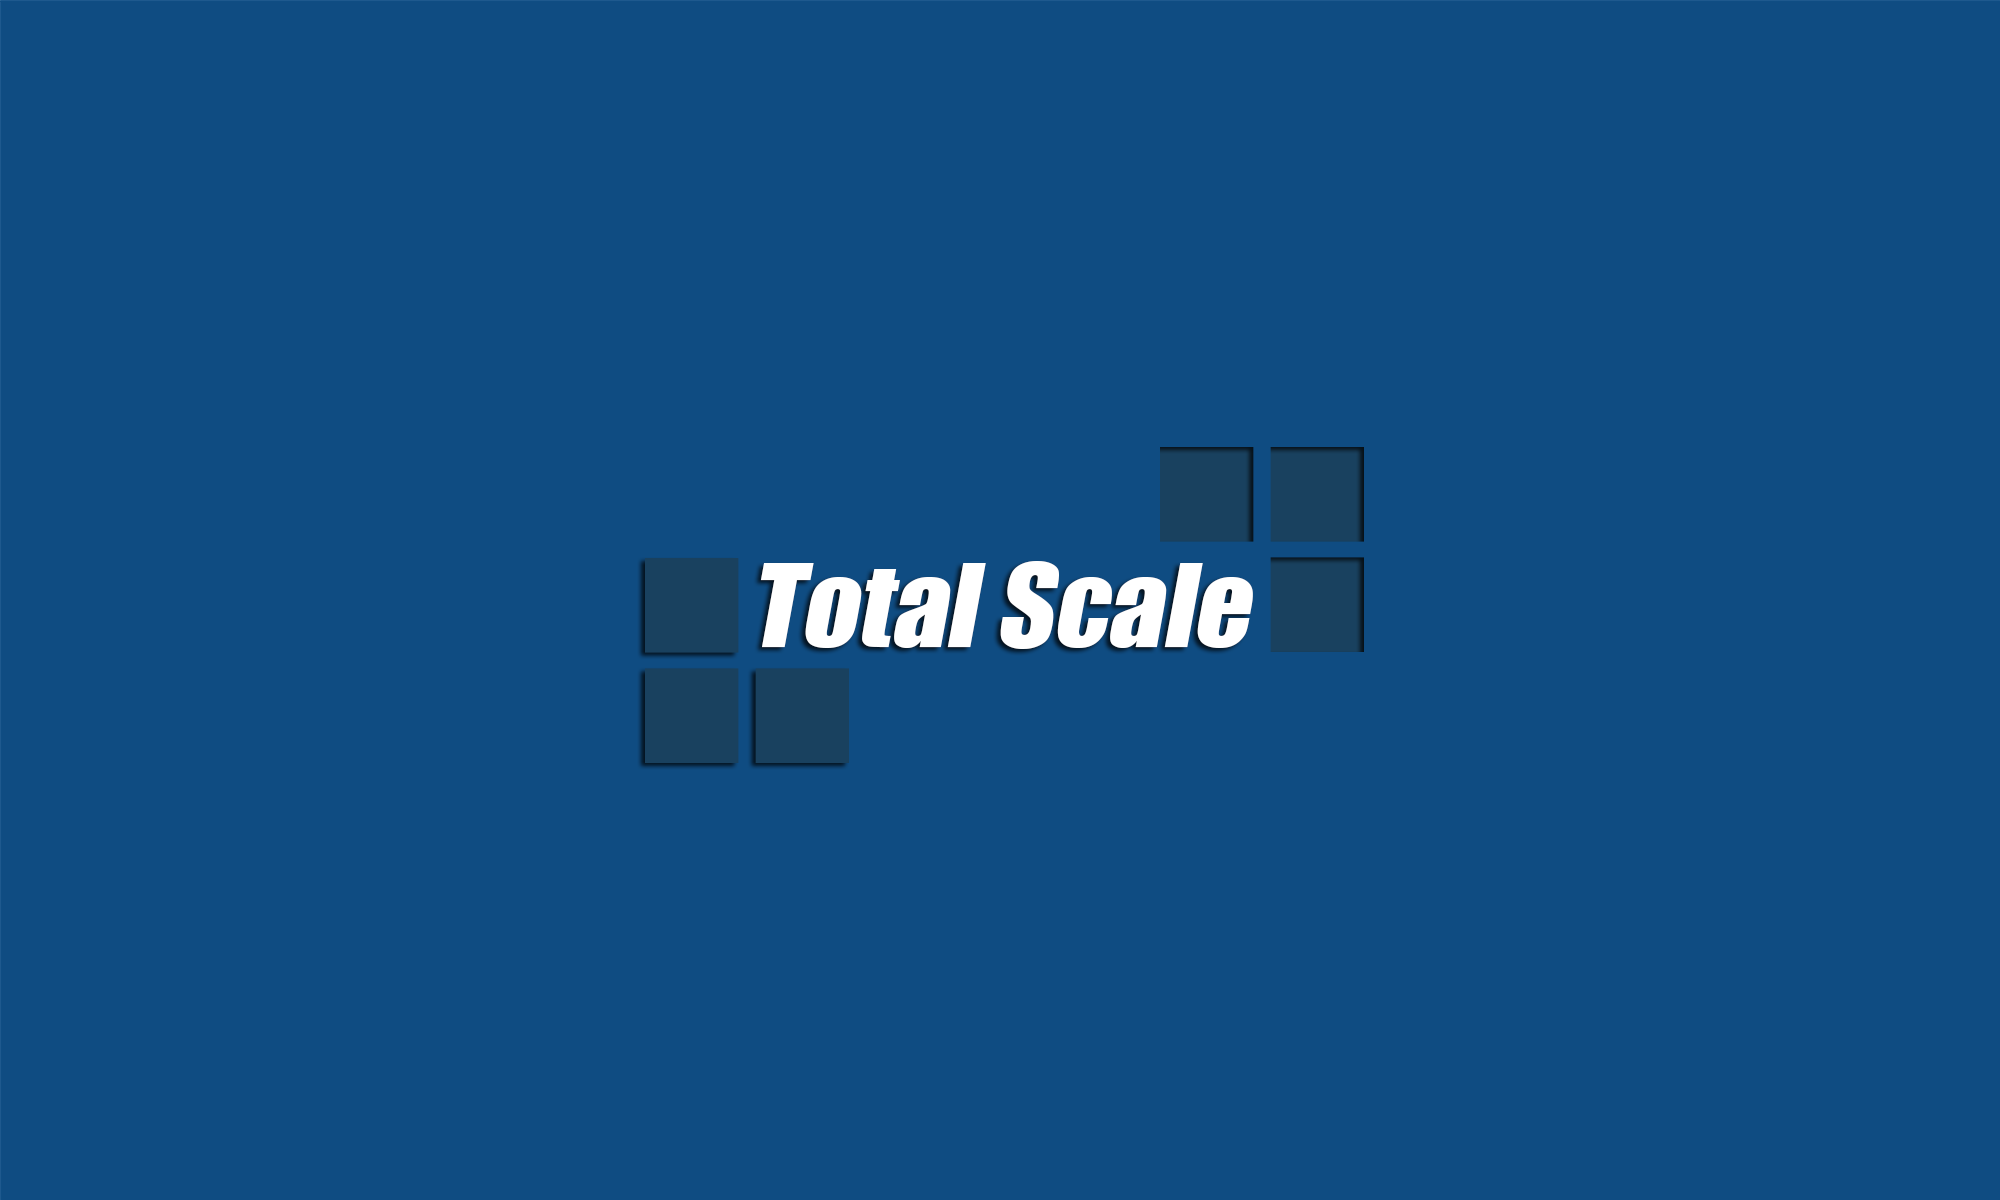 Total Scale